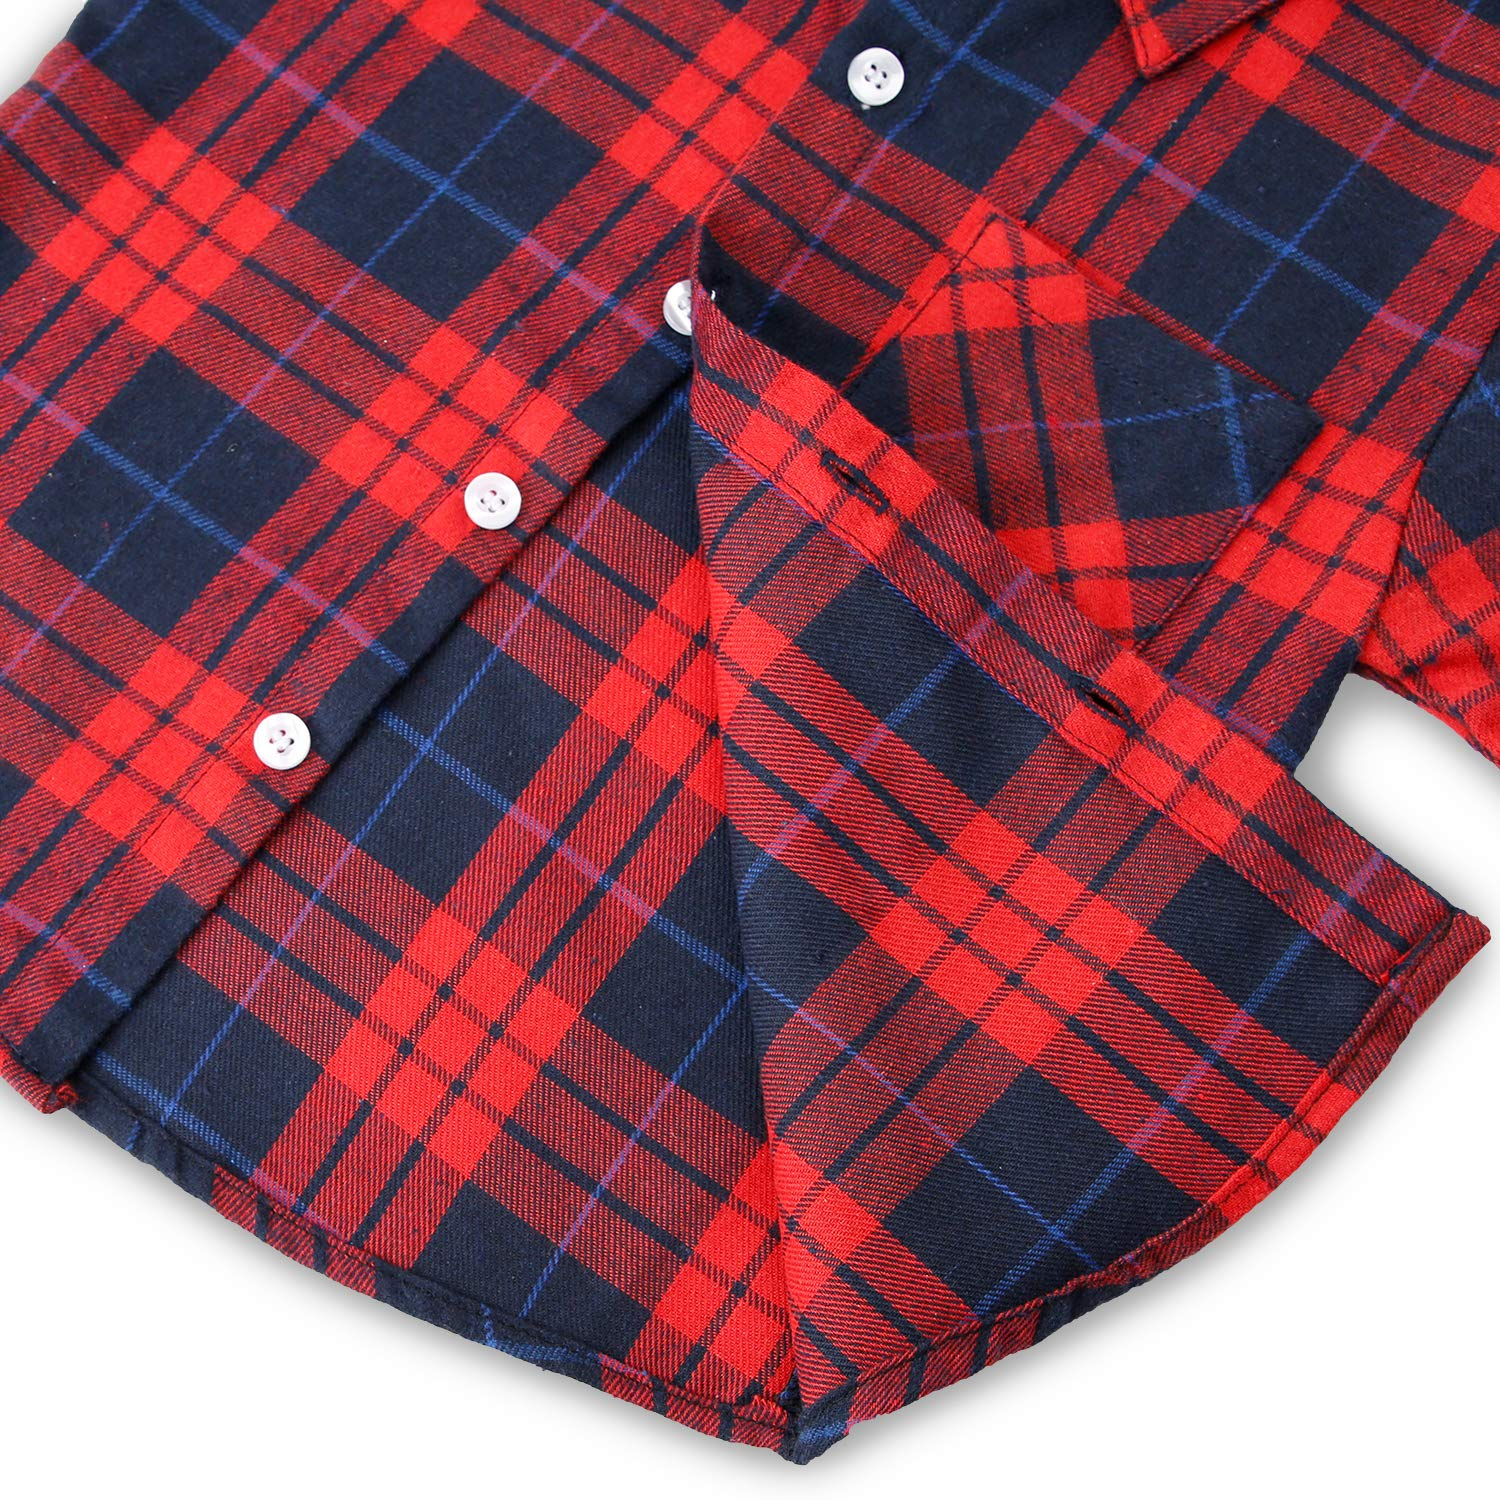 ZOEREA Boys Clothes Sets Bow Ties Shirts Suspenders Jeans Pants Toddler Boy Gentleman Party Wedding Outfits Suits